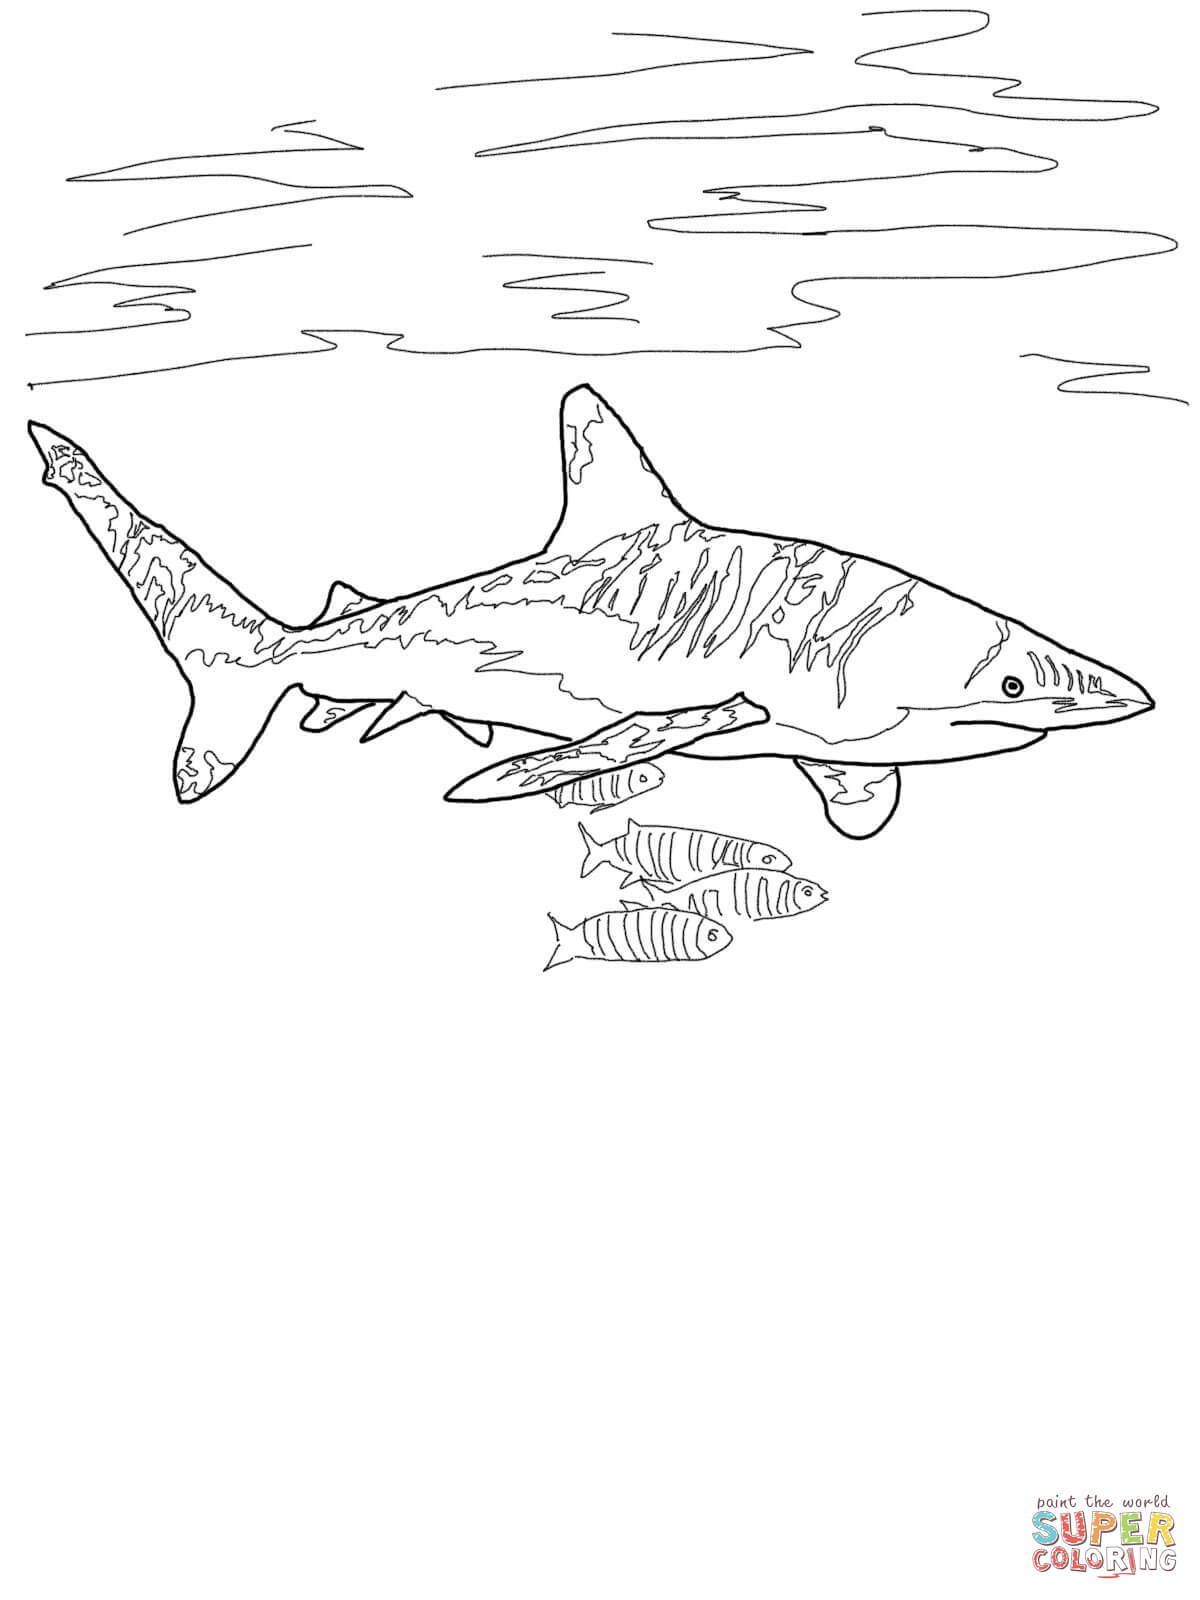 Thresher Shark Drawing at GetDrawings